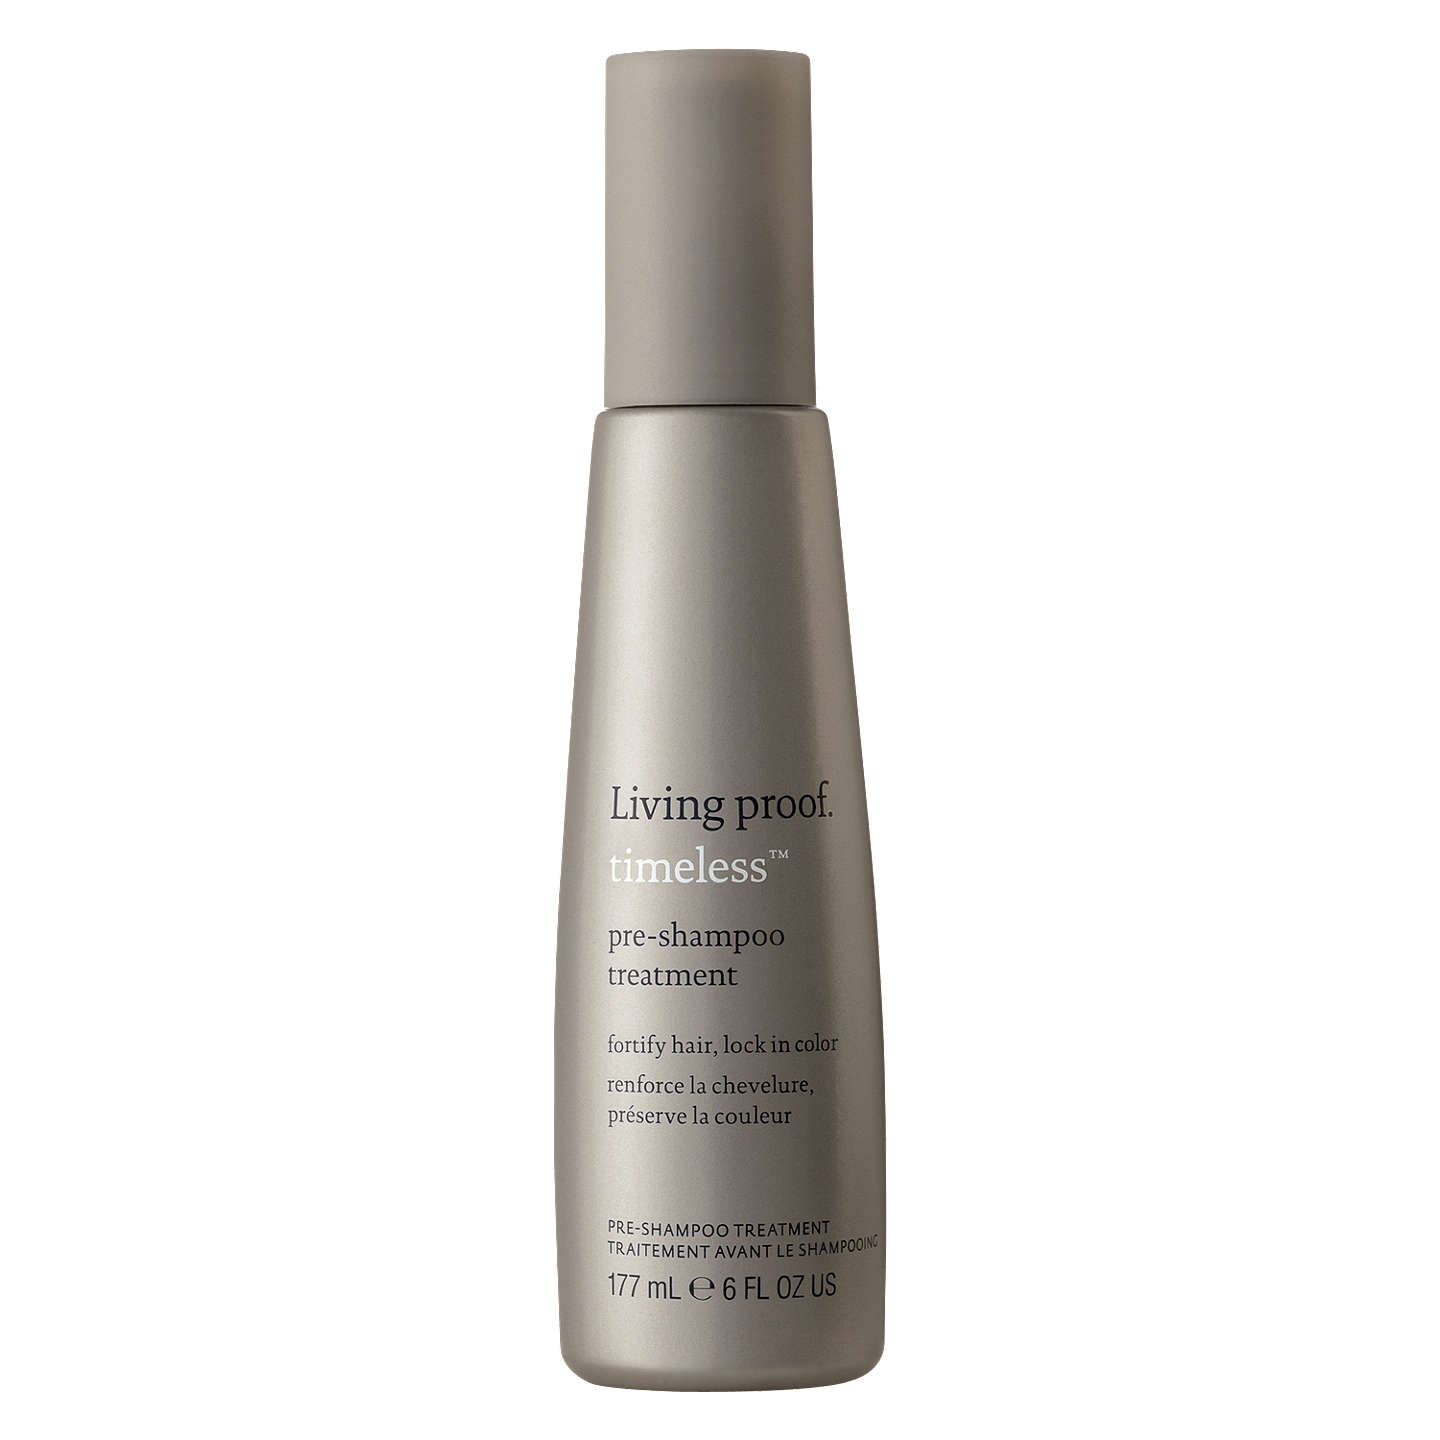 BuyLiving Proof Timeless Pre Shampoo Treatment, 177ml Online at johnlewis.com